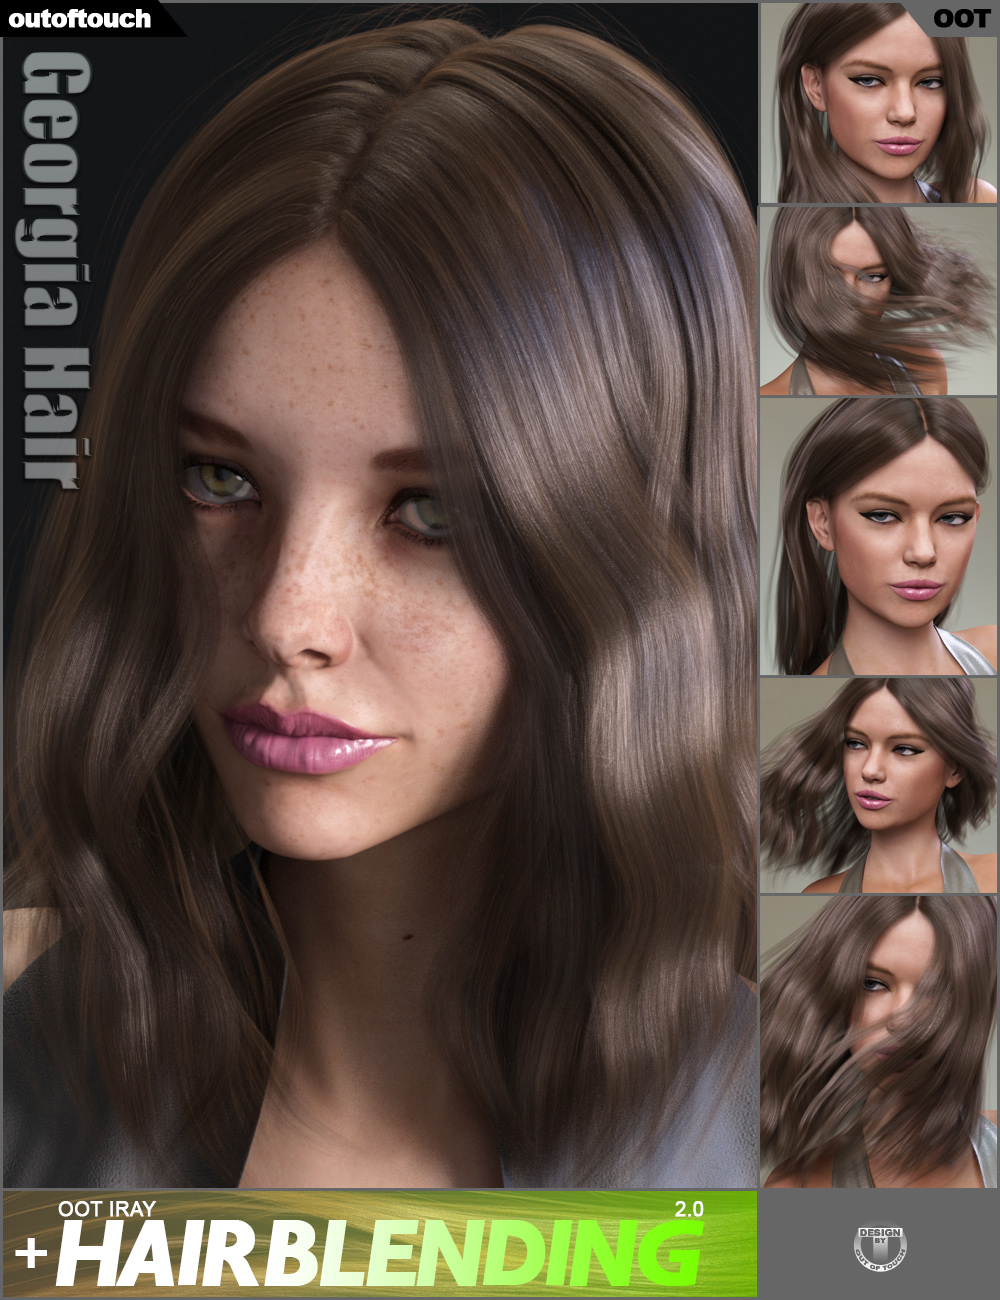 Georgia Hair and OOT Hairblending 2.0 for Genesis 3 Female(s) by: outoftouch, 3D Models by Daz 3D